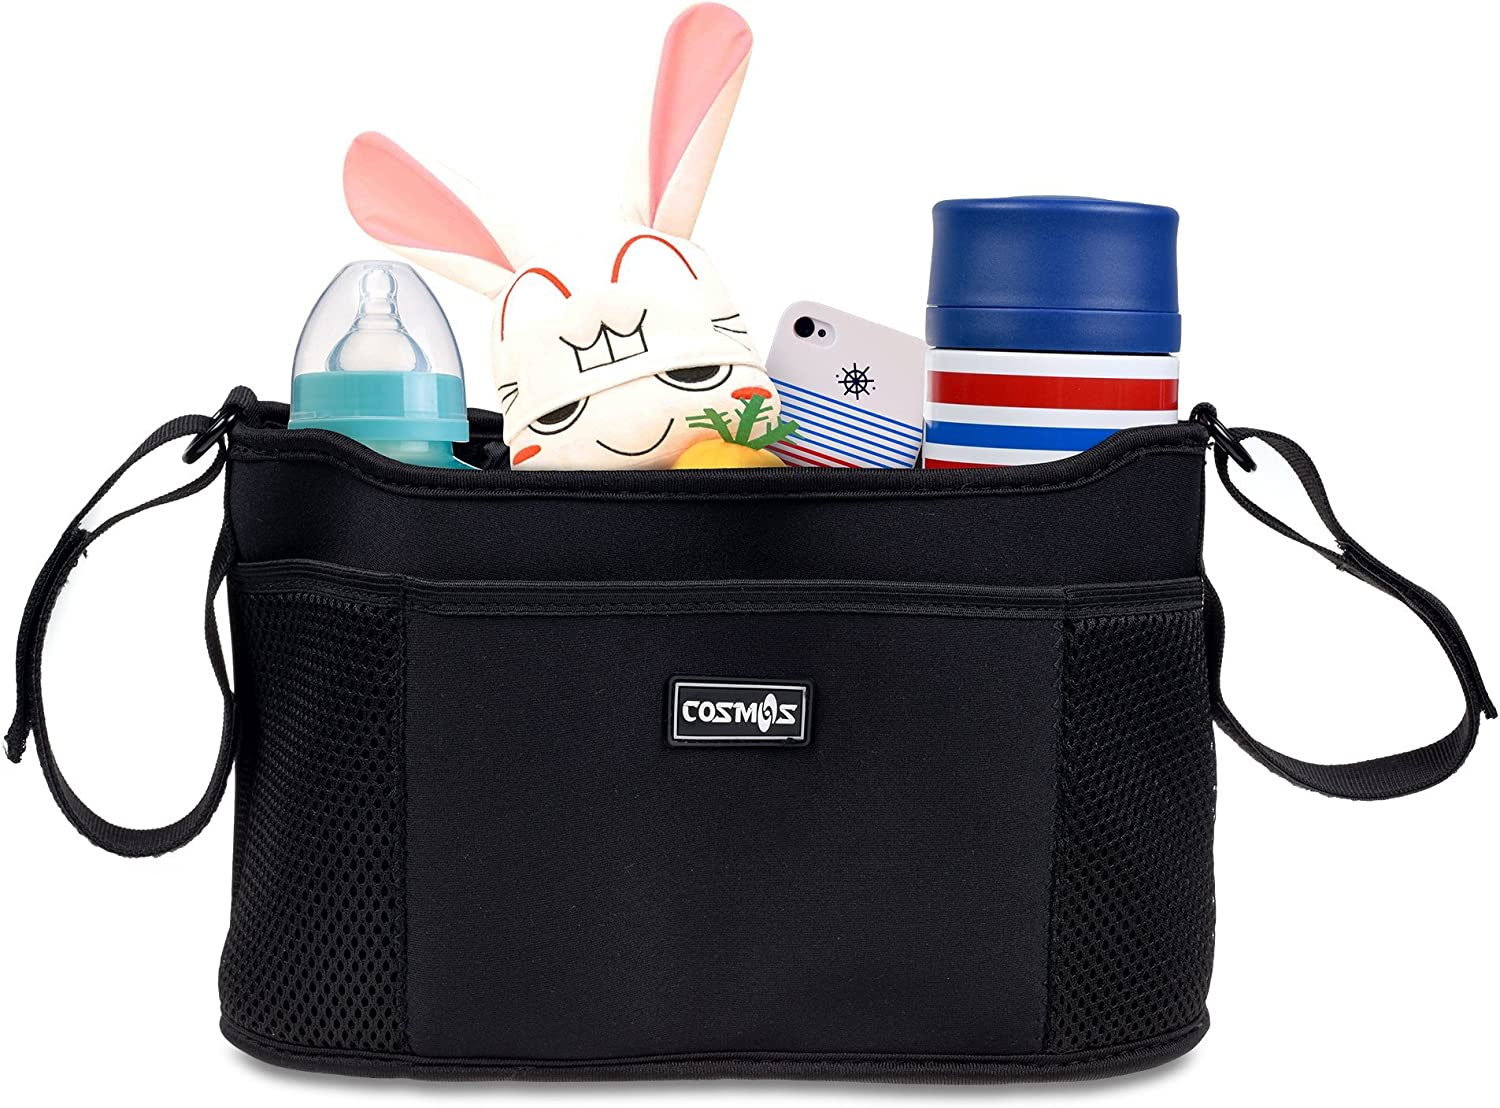 CM Stroller Organizer Diaper Bag Stroller Accessories Pack with Drink Holders and Zipped Pockets for Baby Stroller, Car, Shopping Cart. Fits All Major Strollers. (Black)